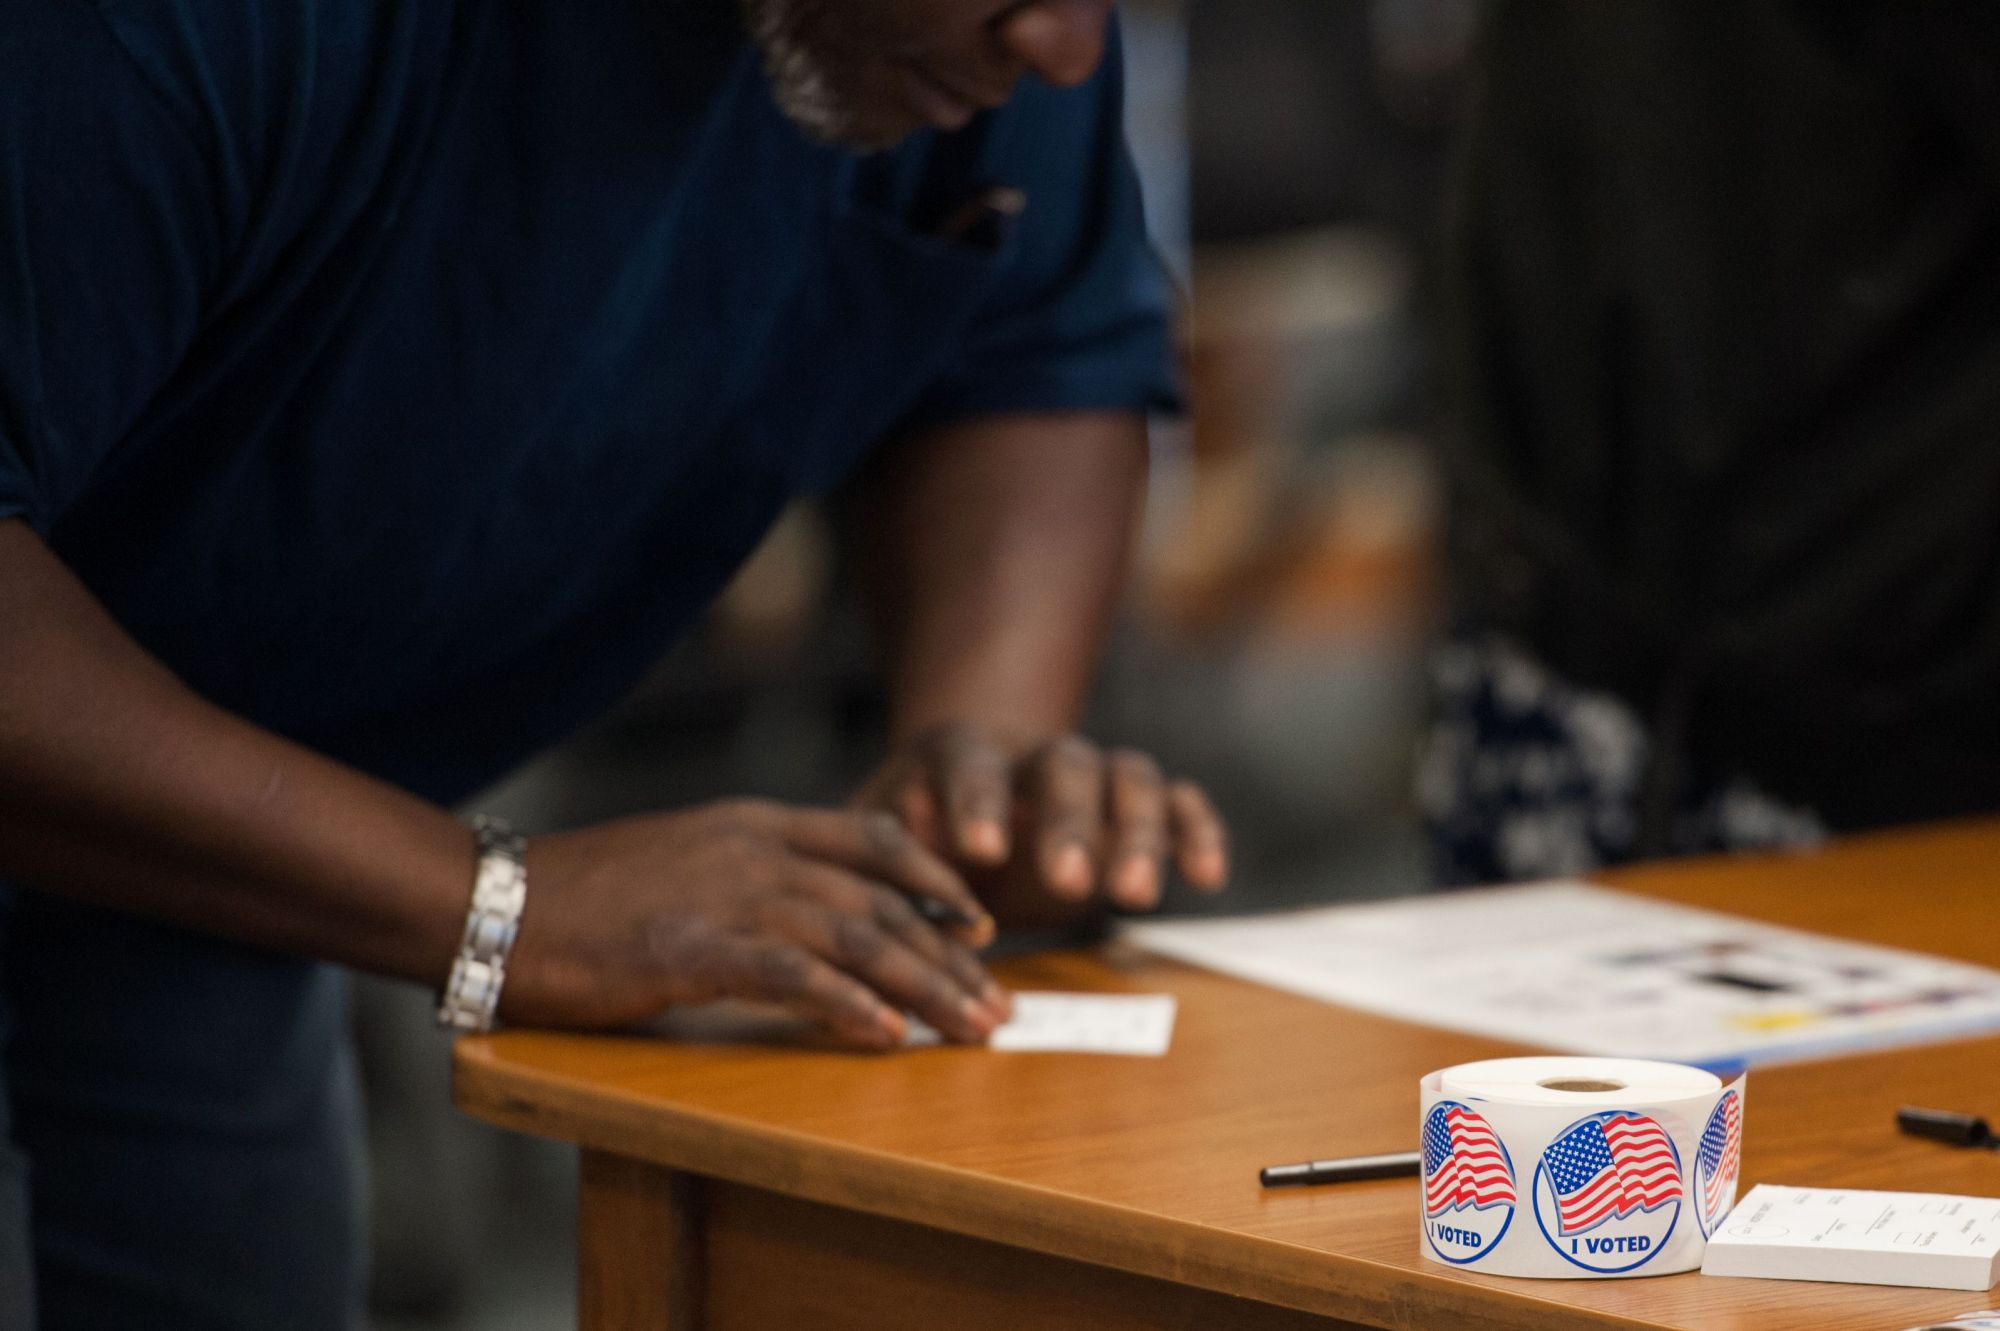 Voting stickers are seen as a man is checked in to receive his ballot during Missouri primary voting on March 15, 2016, in Ferguson, Missouri. (MICHAEL B. THOMAS/AFP via Getty Images)